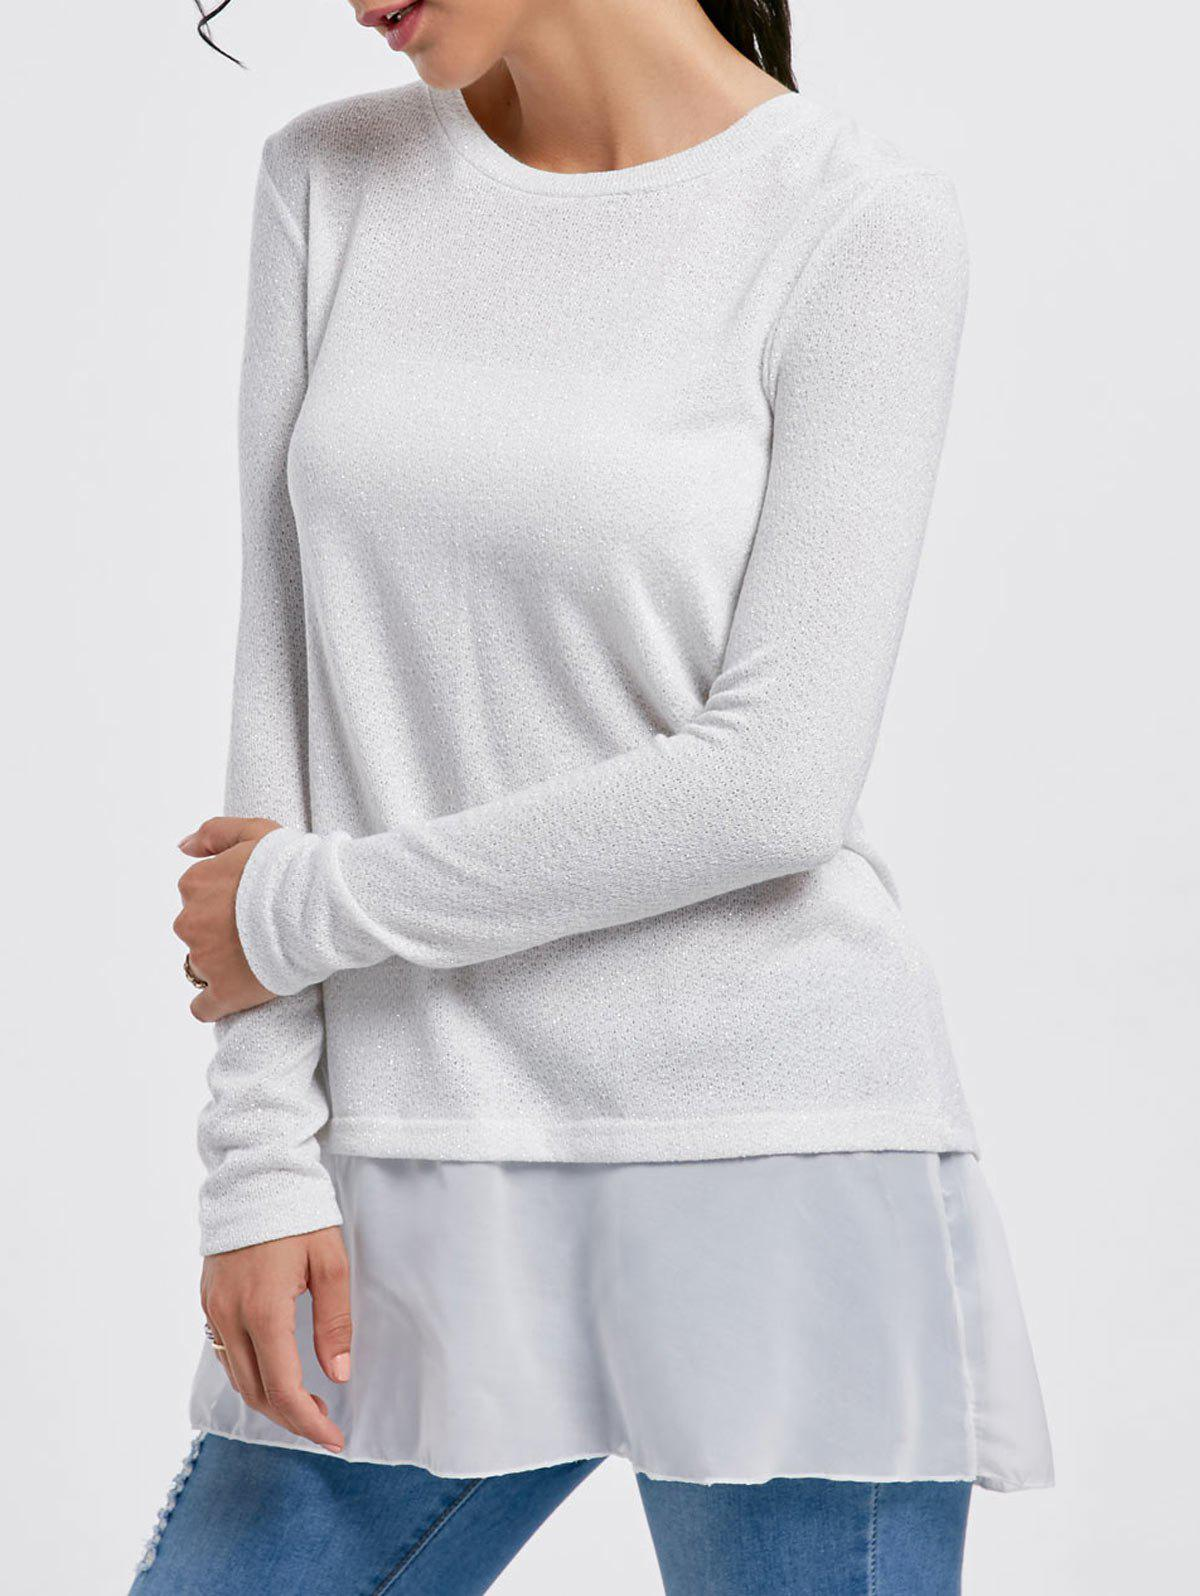 Stylish Scoop Neck Long Sleeve Chiffon Spliced Sequined Womens SweaterWOMEN<br><br>Size: M; Color: WHITE; Type: Pullovers; Material: Acrylic; Sleeve Length: Full; Collar: Scoop Neck; Style: Fashion; Pattern Type: Patchwork; Weight: 0.3100kg; Package Contents: 1 x Sweater;